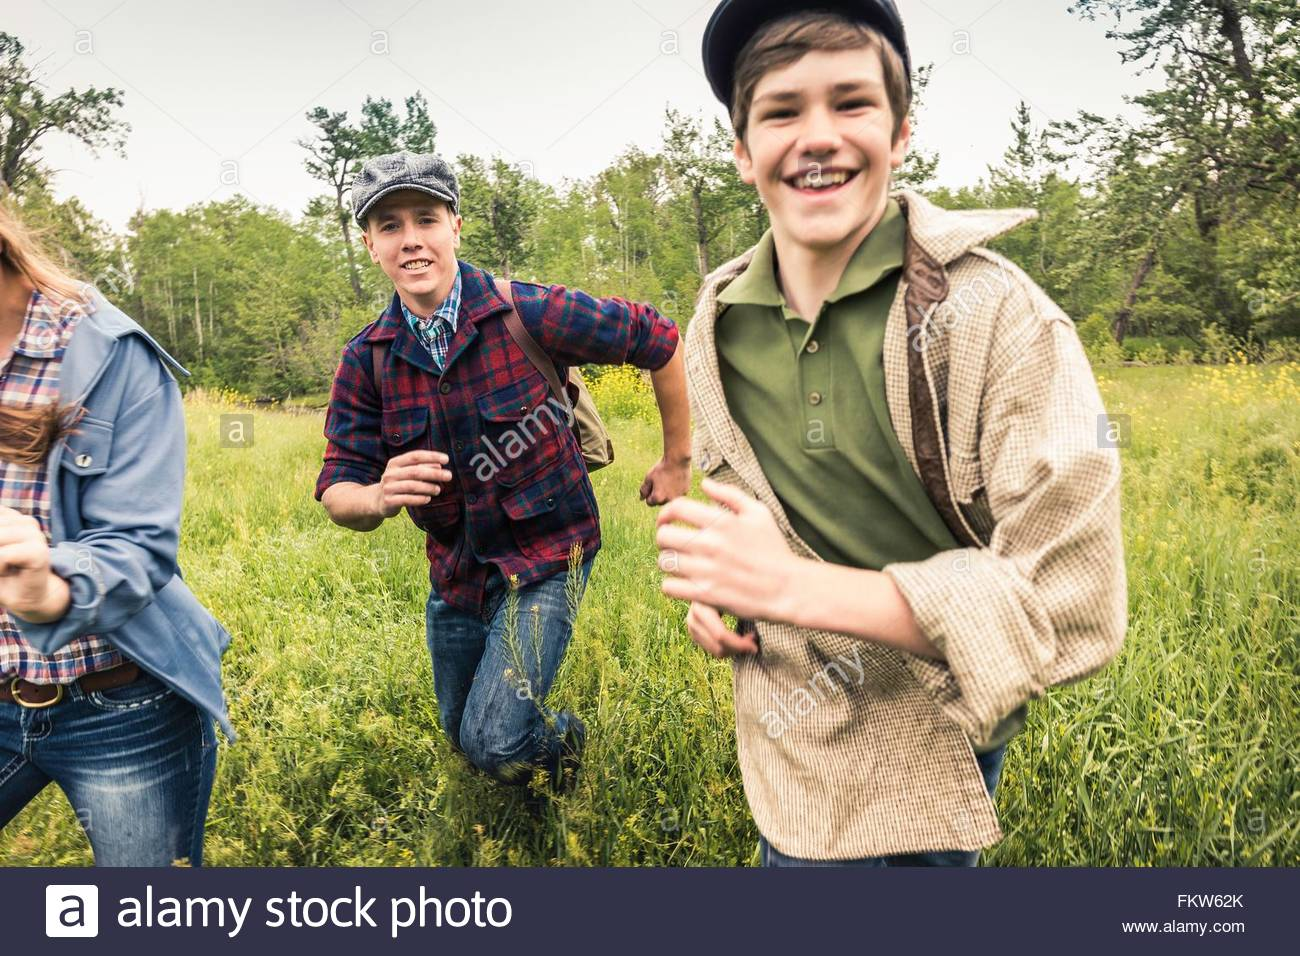 Young adults and teen boy wearing flat caps running in tall grass looking at camera smiling - Stock Image